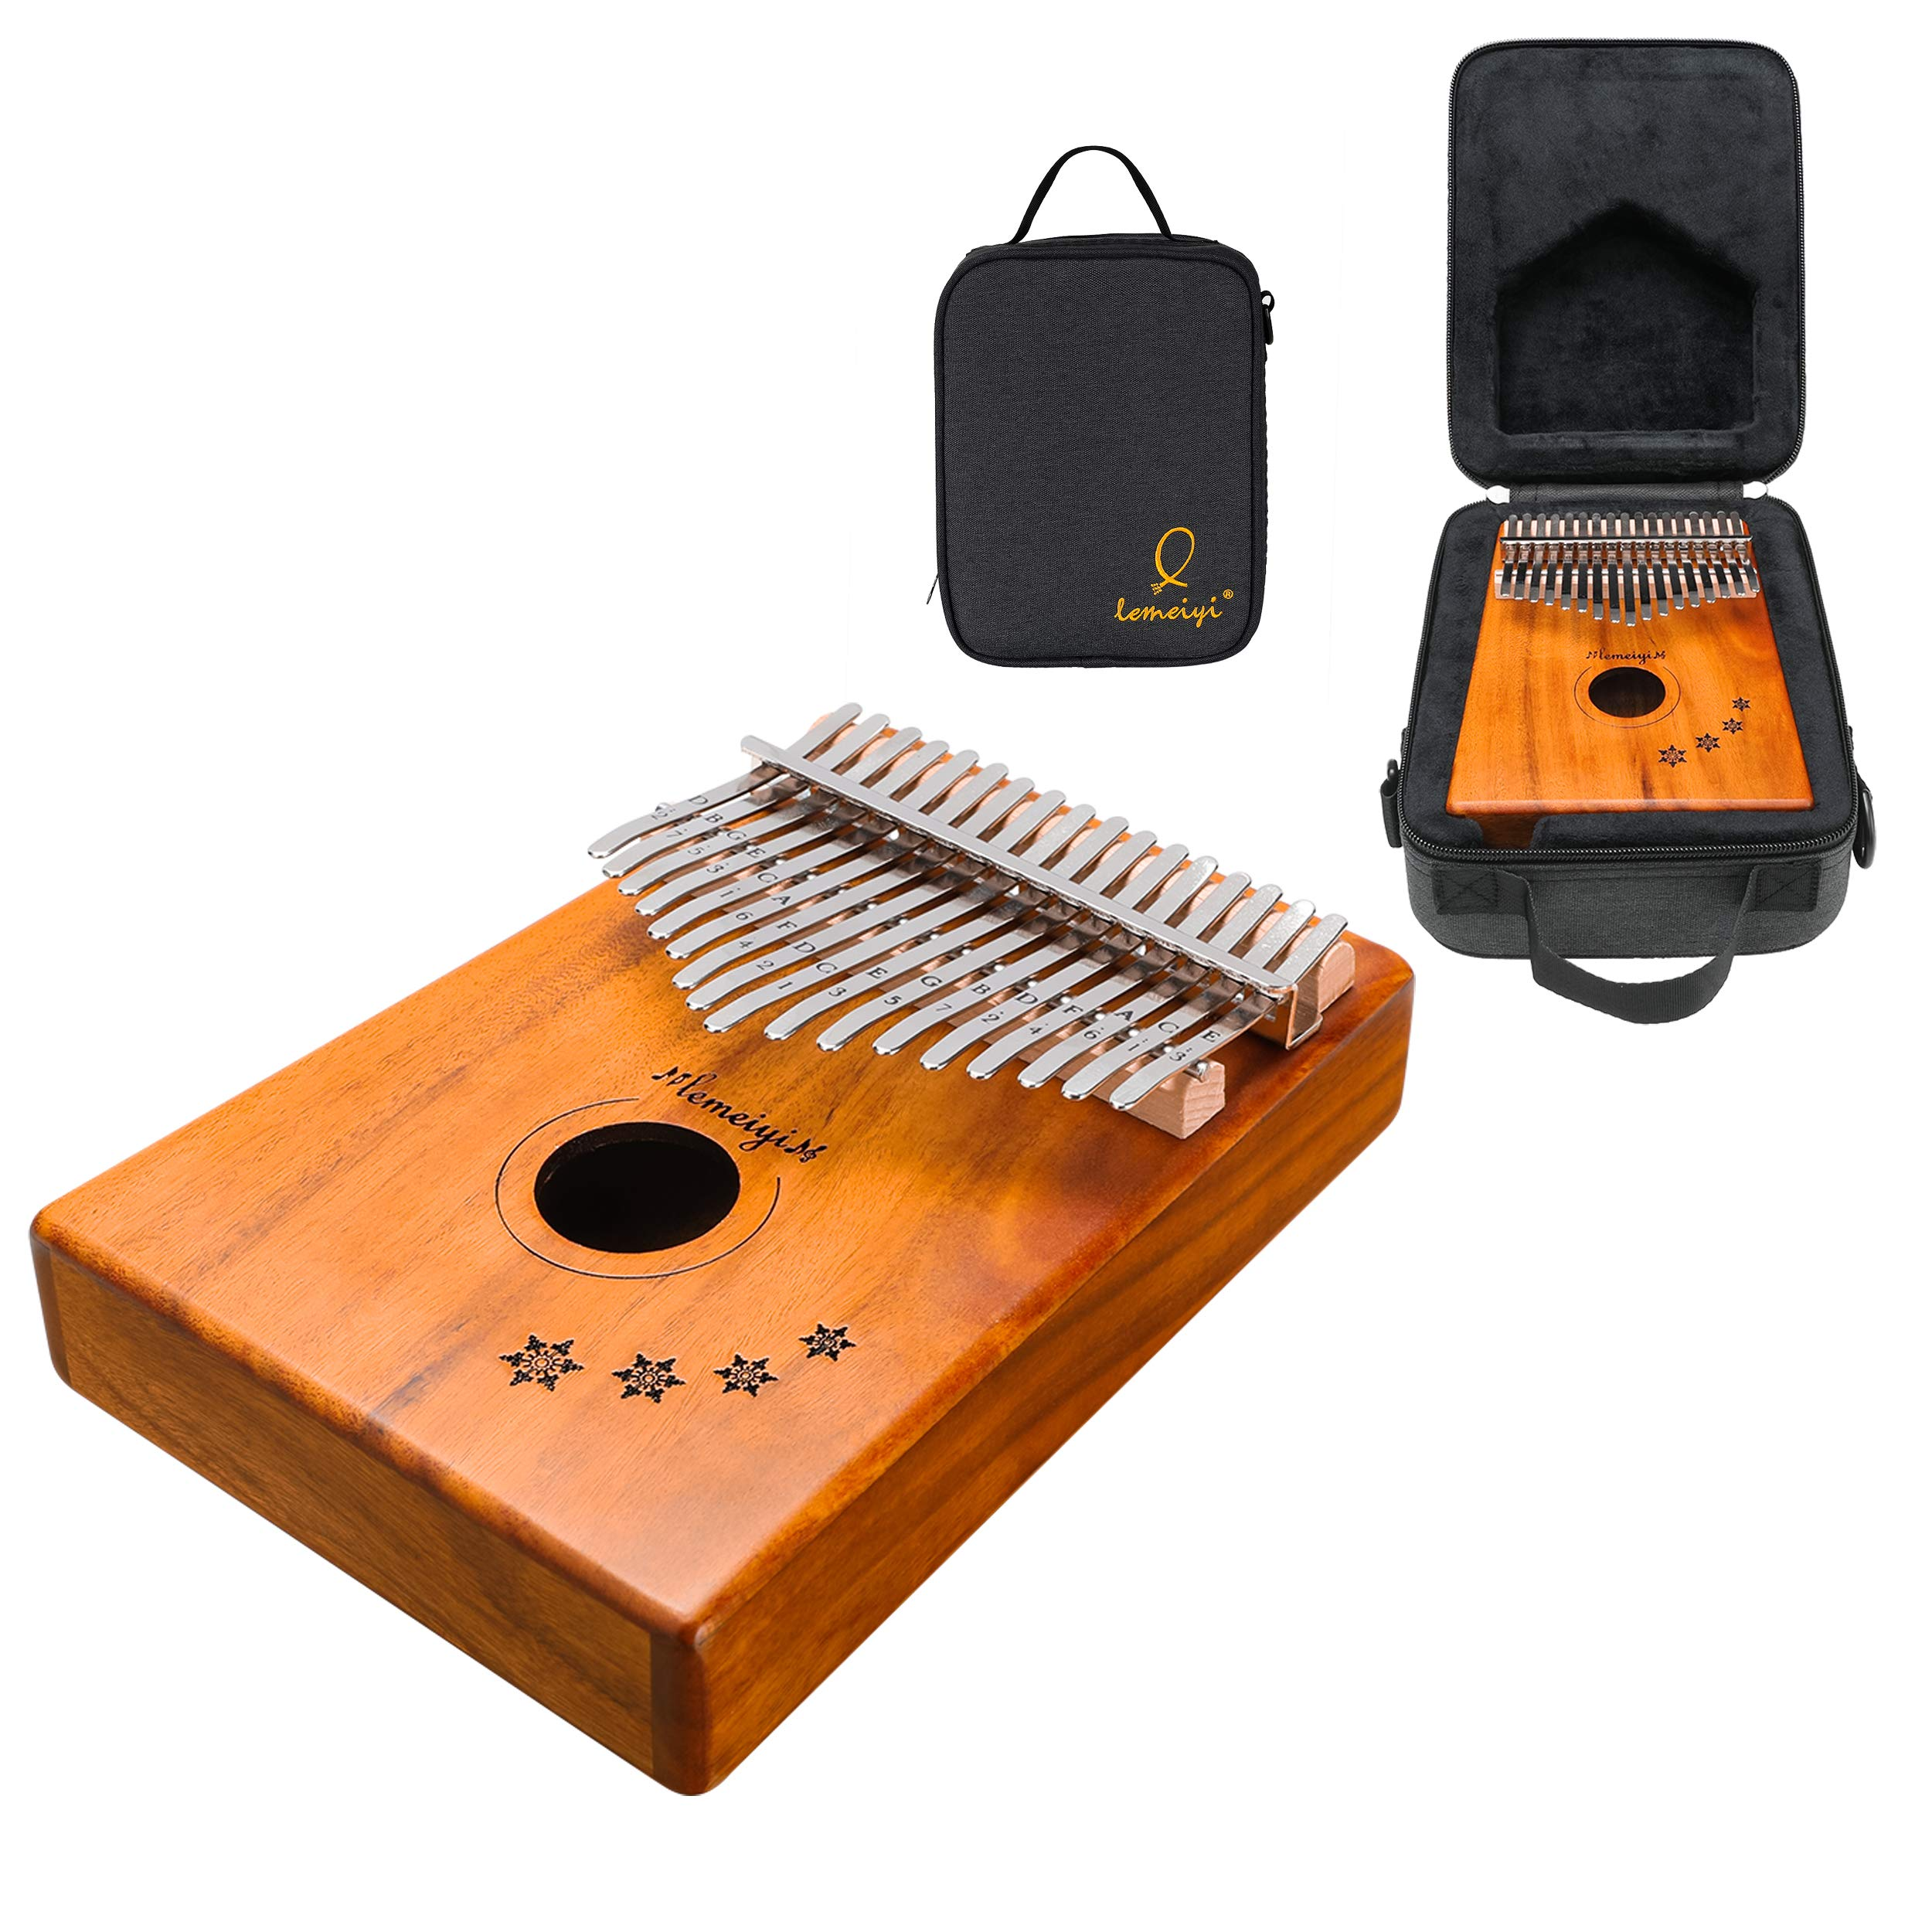 LEMEIYI Kalimba 17 Key with Mahogany,Portable Thumb Piano Mbira Sanza of Wooden Attached Ore Metal Tines with Kalimba Case